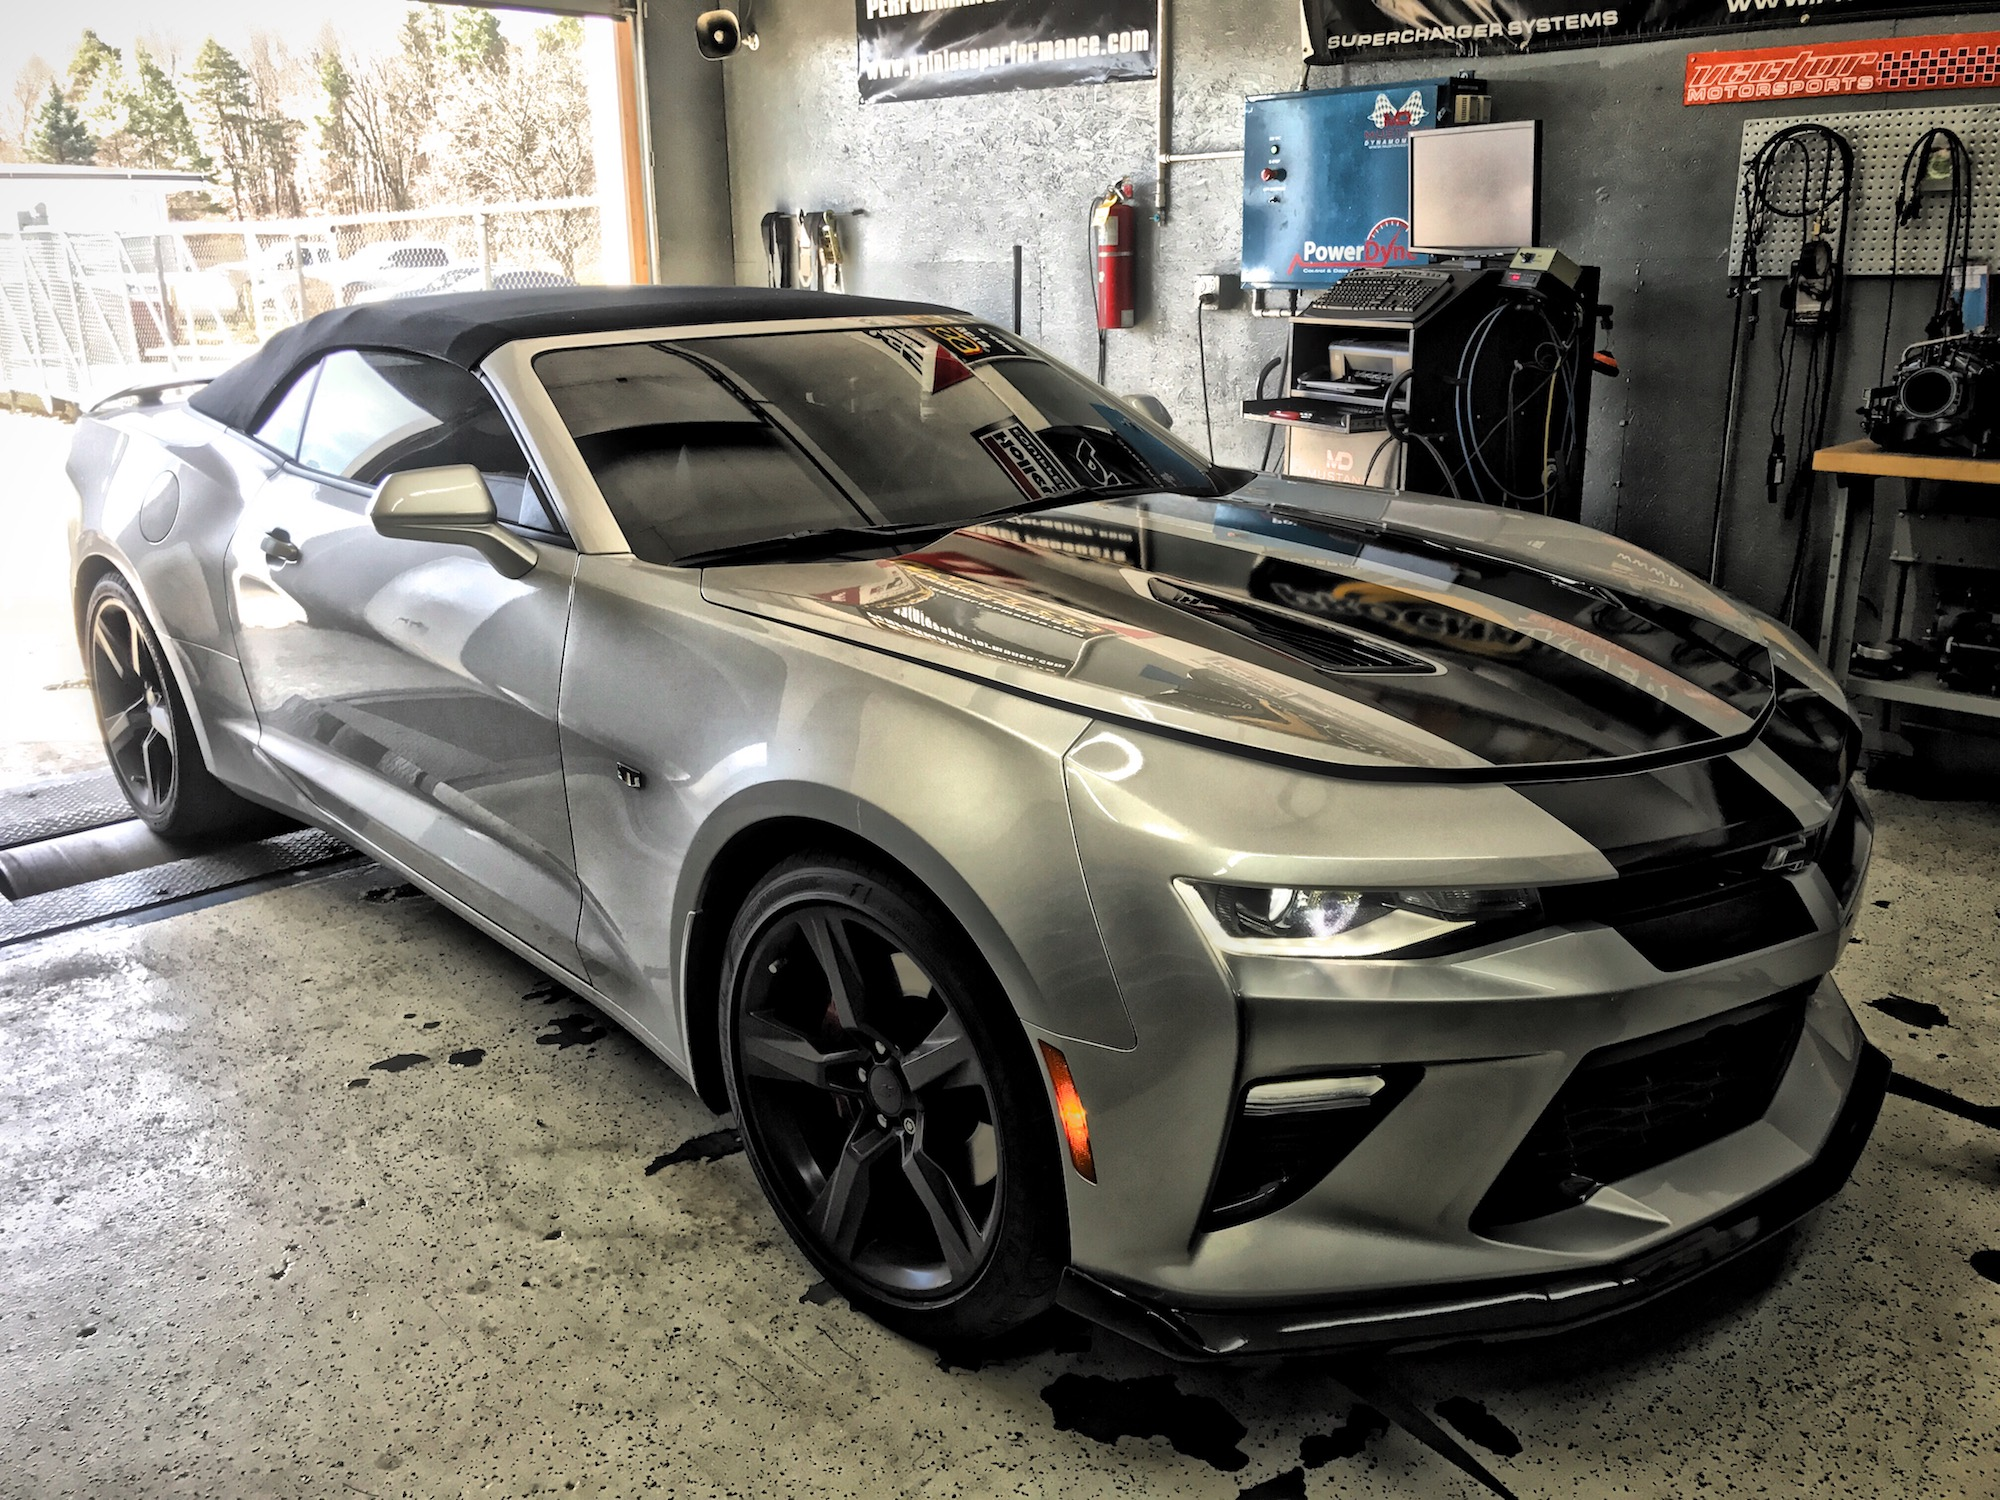 2016 6th Gen Camaro Performance Packages